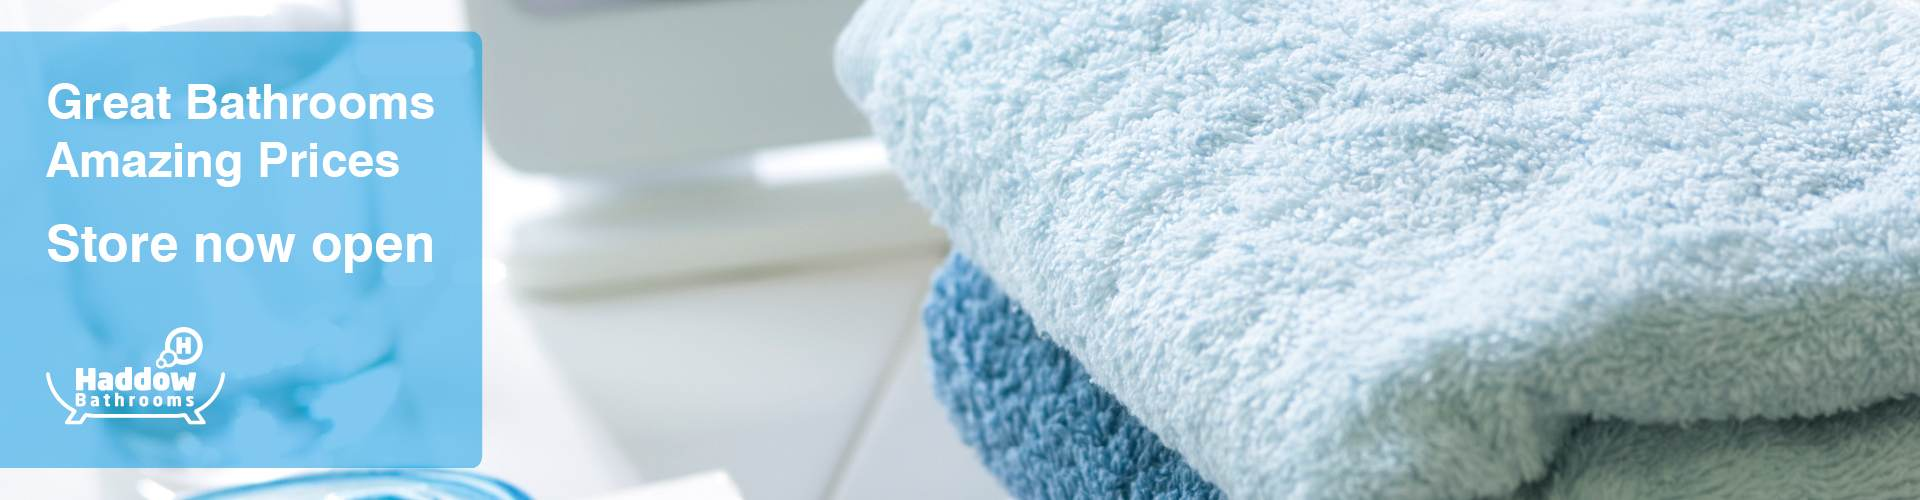 Haddow Bathrooms page banner with image of fluffy towels and a blue background panel with white text that reads 'Great Bathrooms Amazing Prices New store now open'